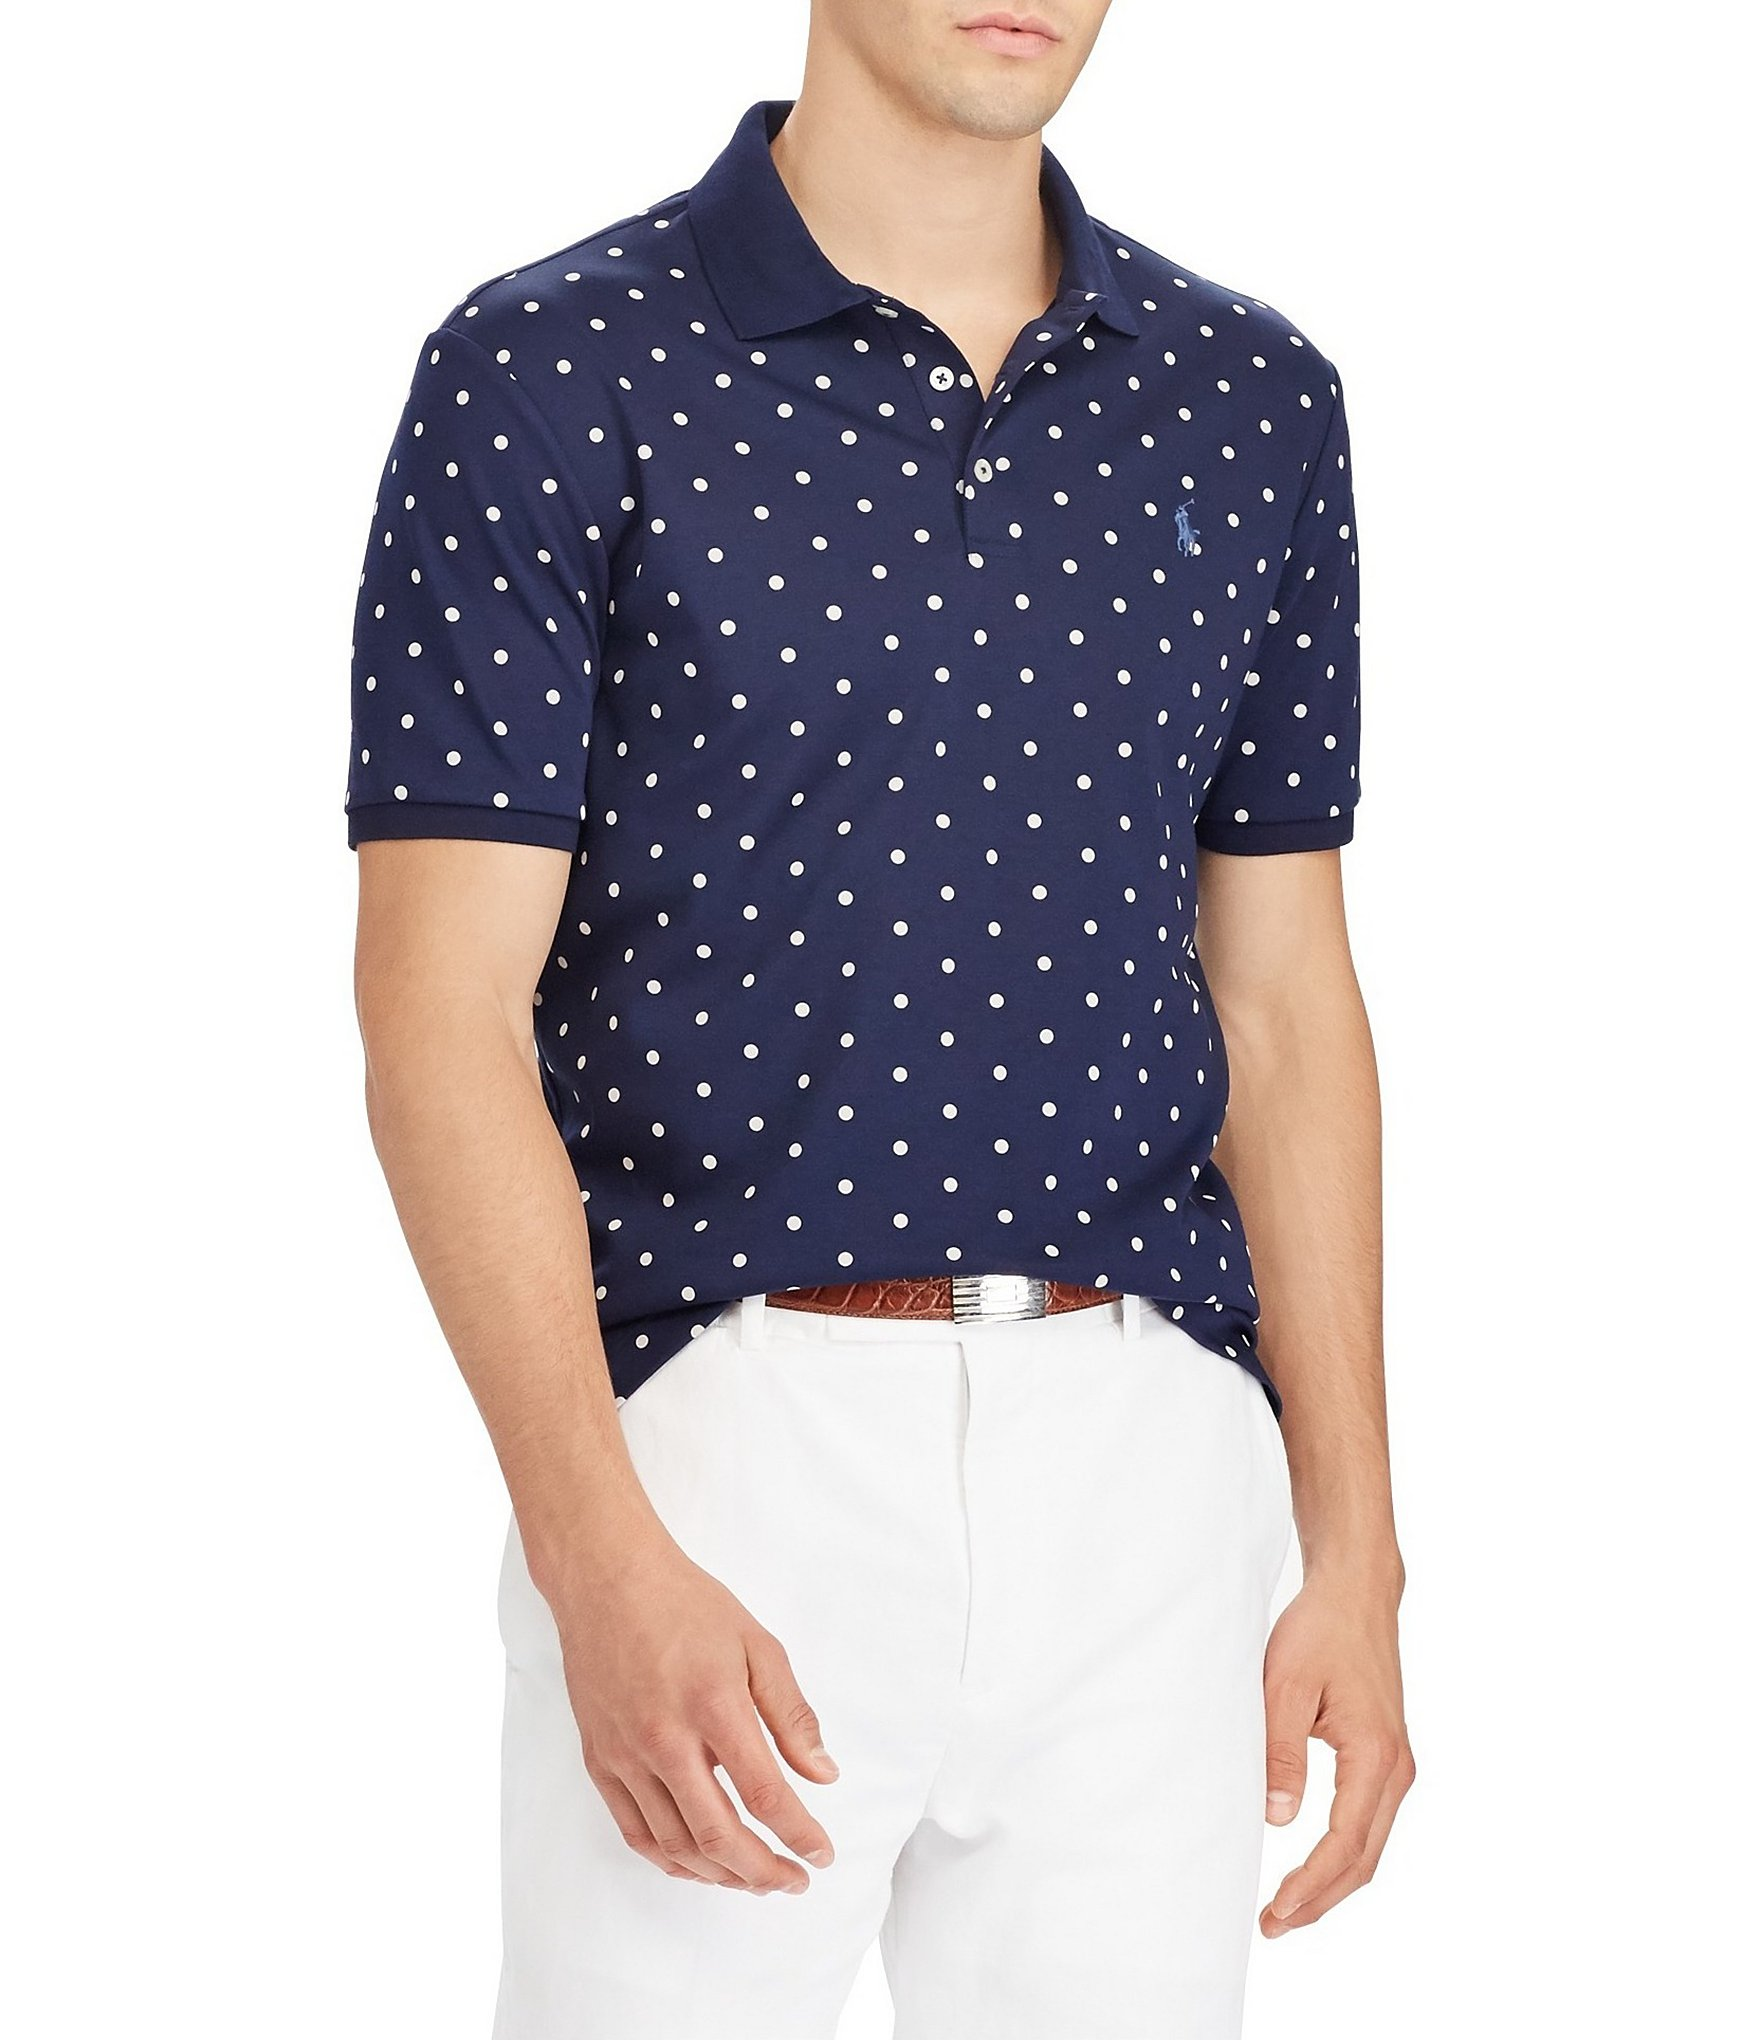 Ralph Lauren Men's Clothing: weeny.tk - Your Online Men's Clothing Store! Get 5% in rewards with Club O!